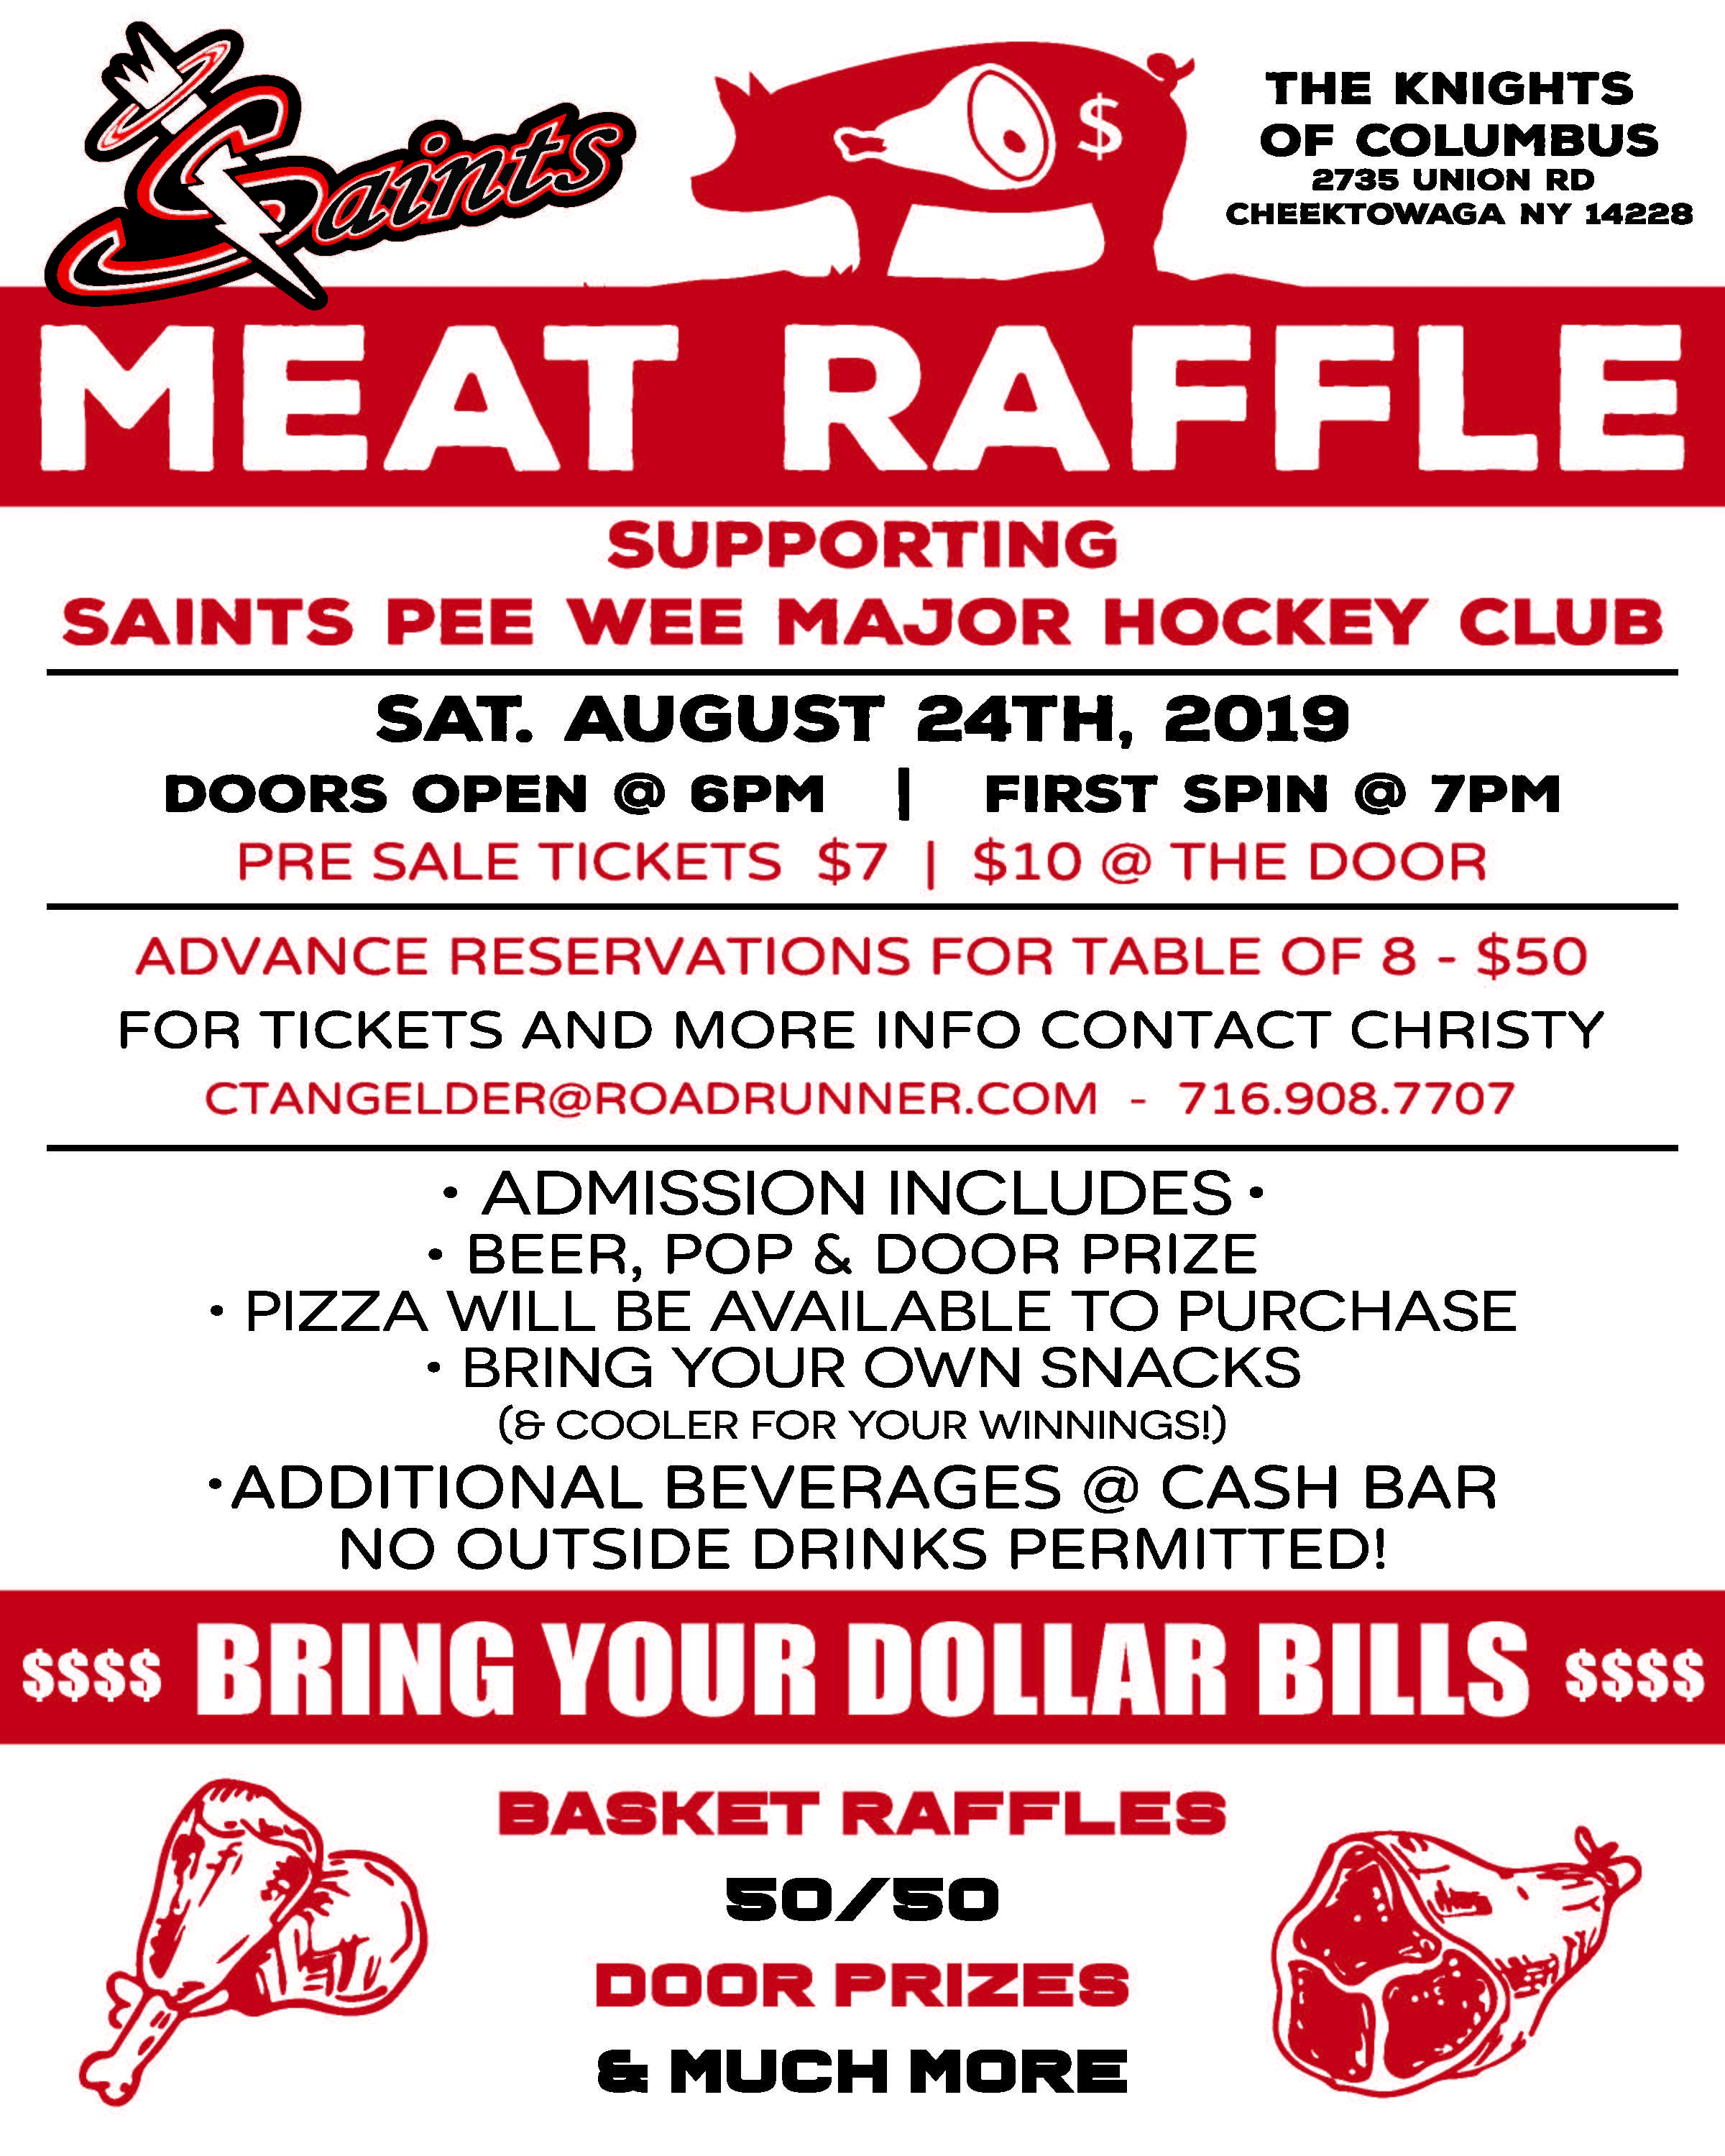 Buffalo Saints Pee Wee Major Meat Raffle Poster.jpg